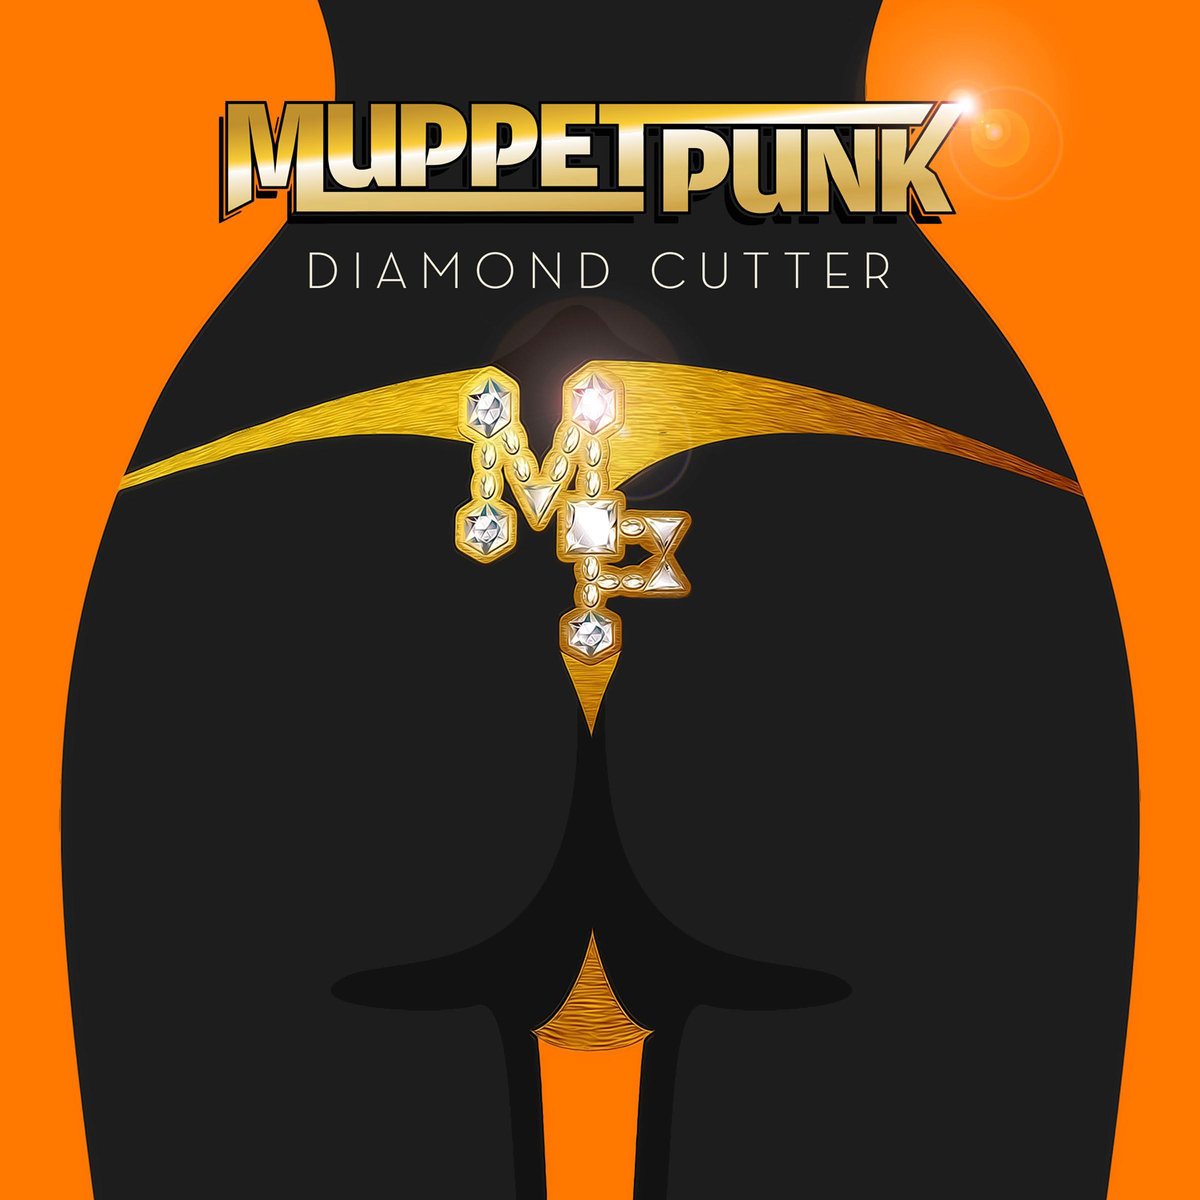 Muppet Punk - Twrk'n Upside Down @ 'Diamond Cutters' album (bass, devi genuone)